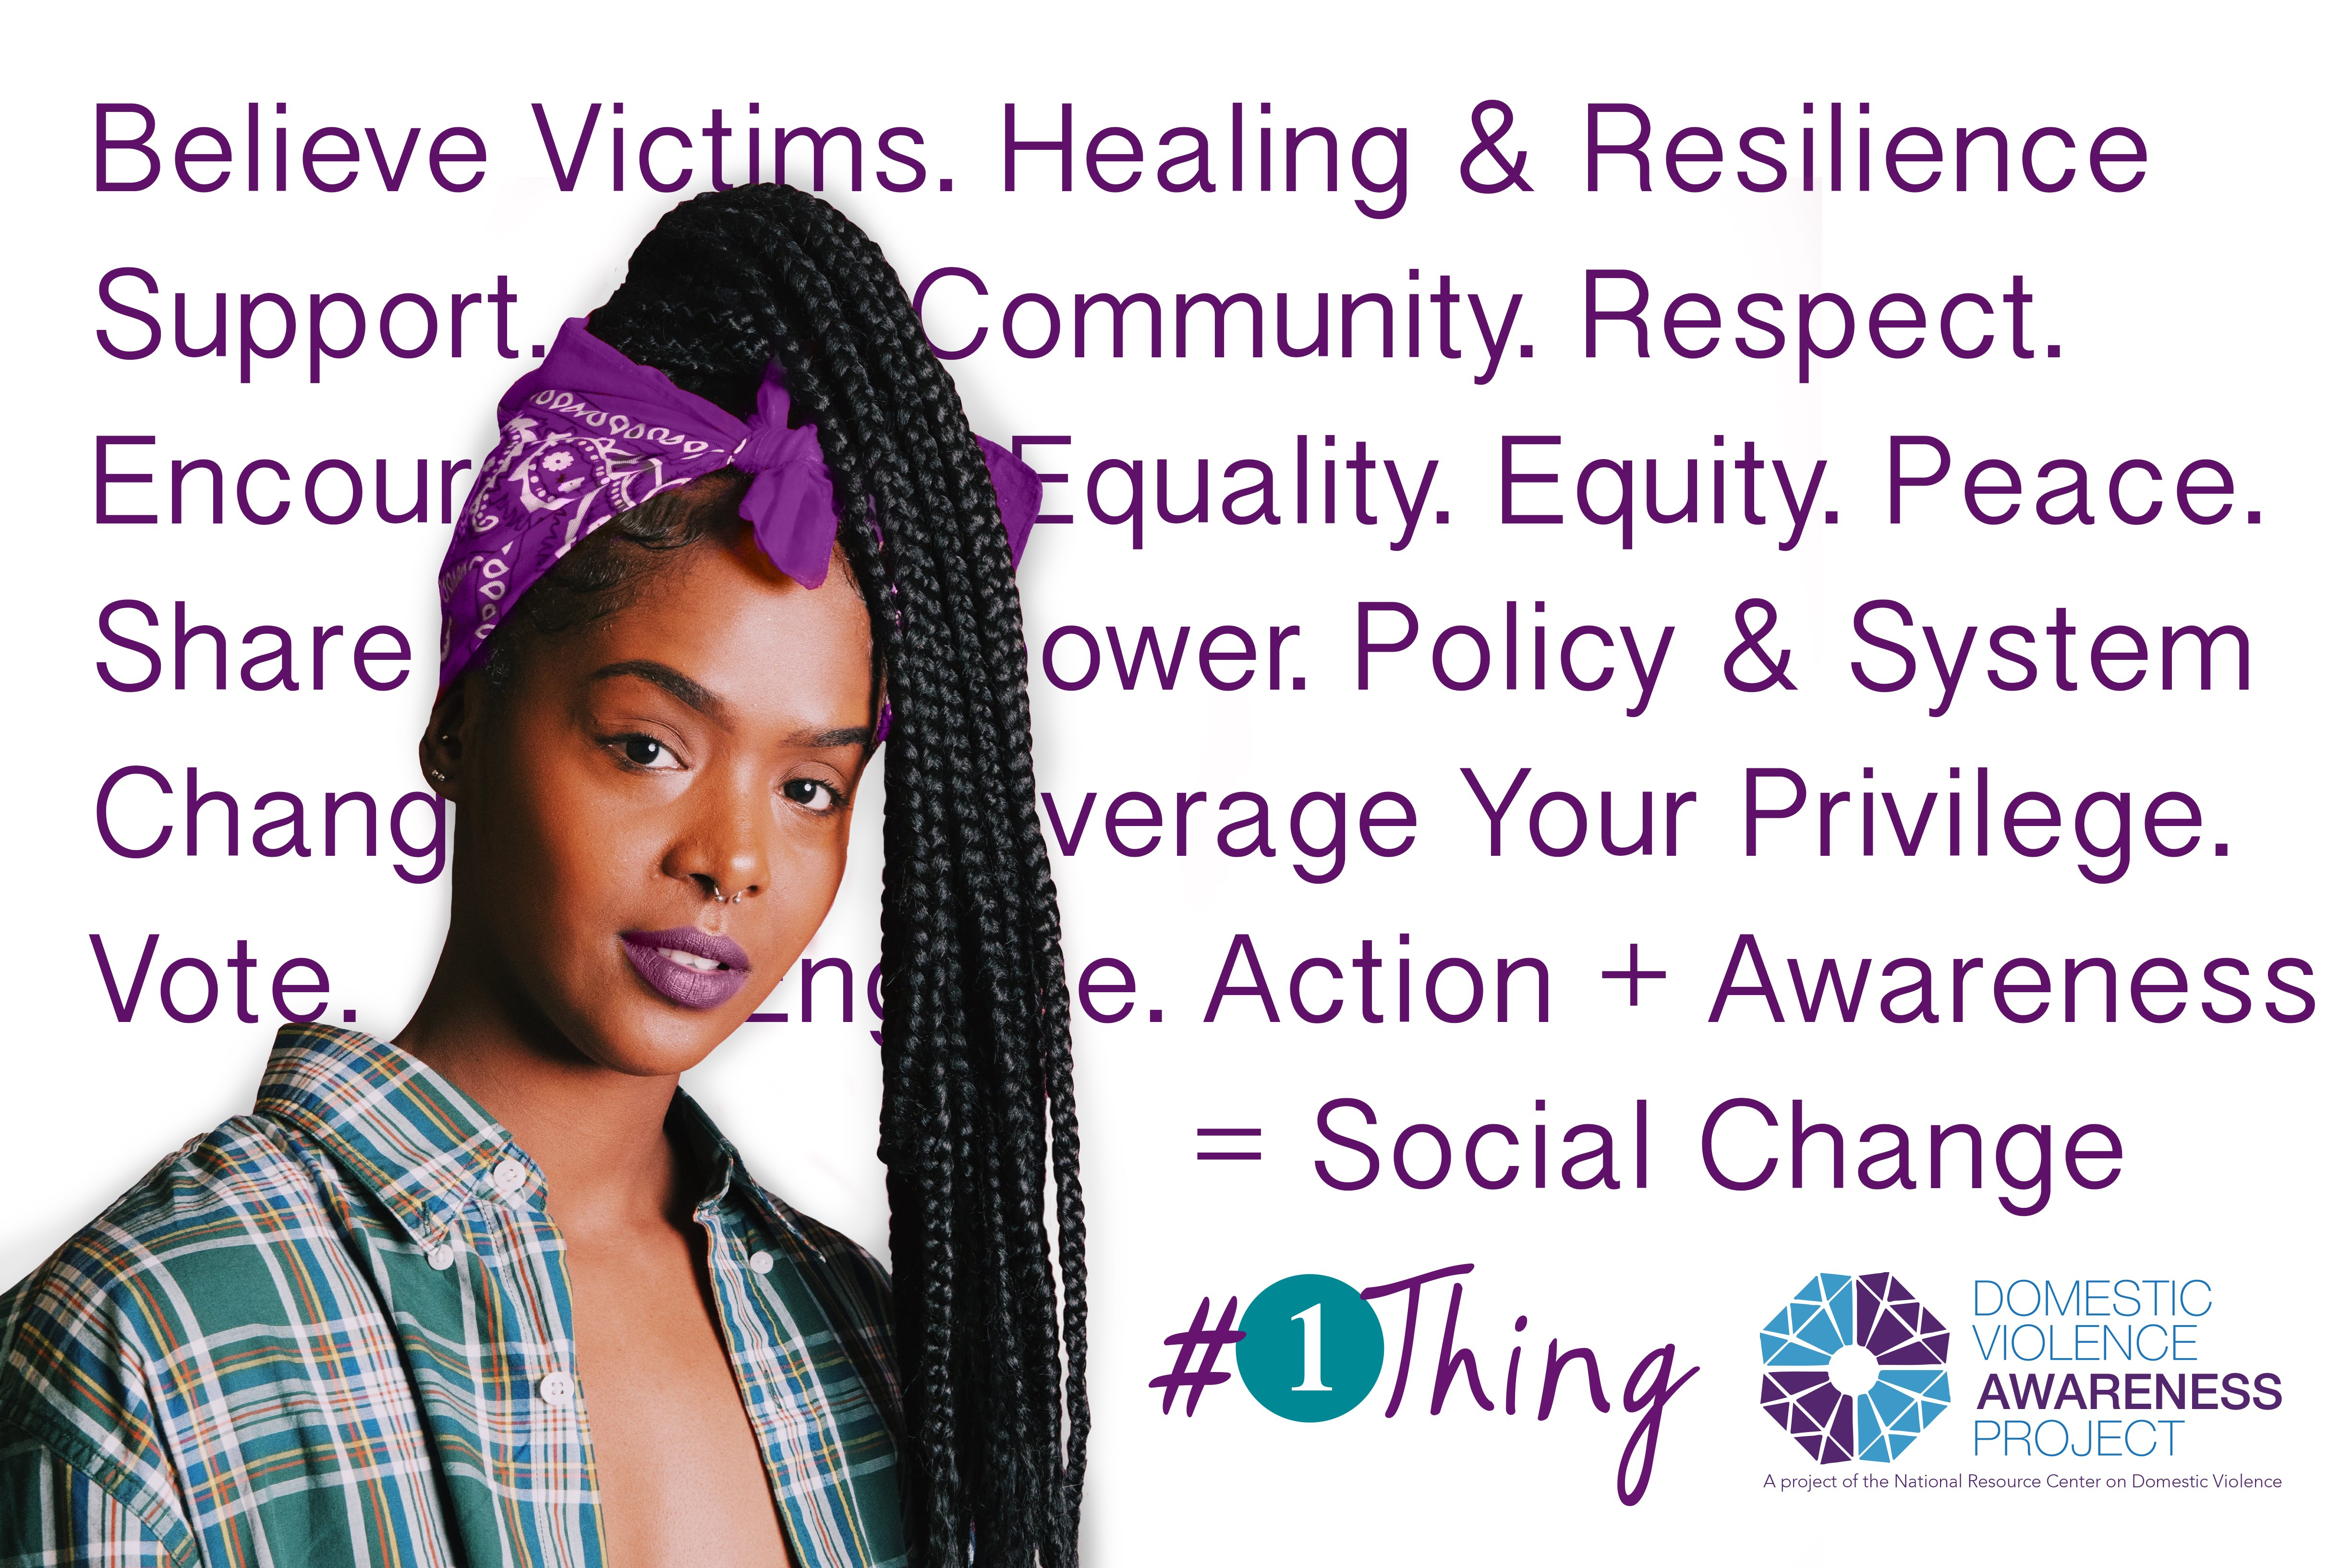 1thing image black woman support survivor text background